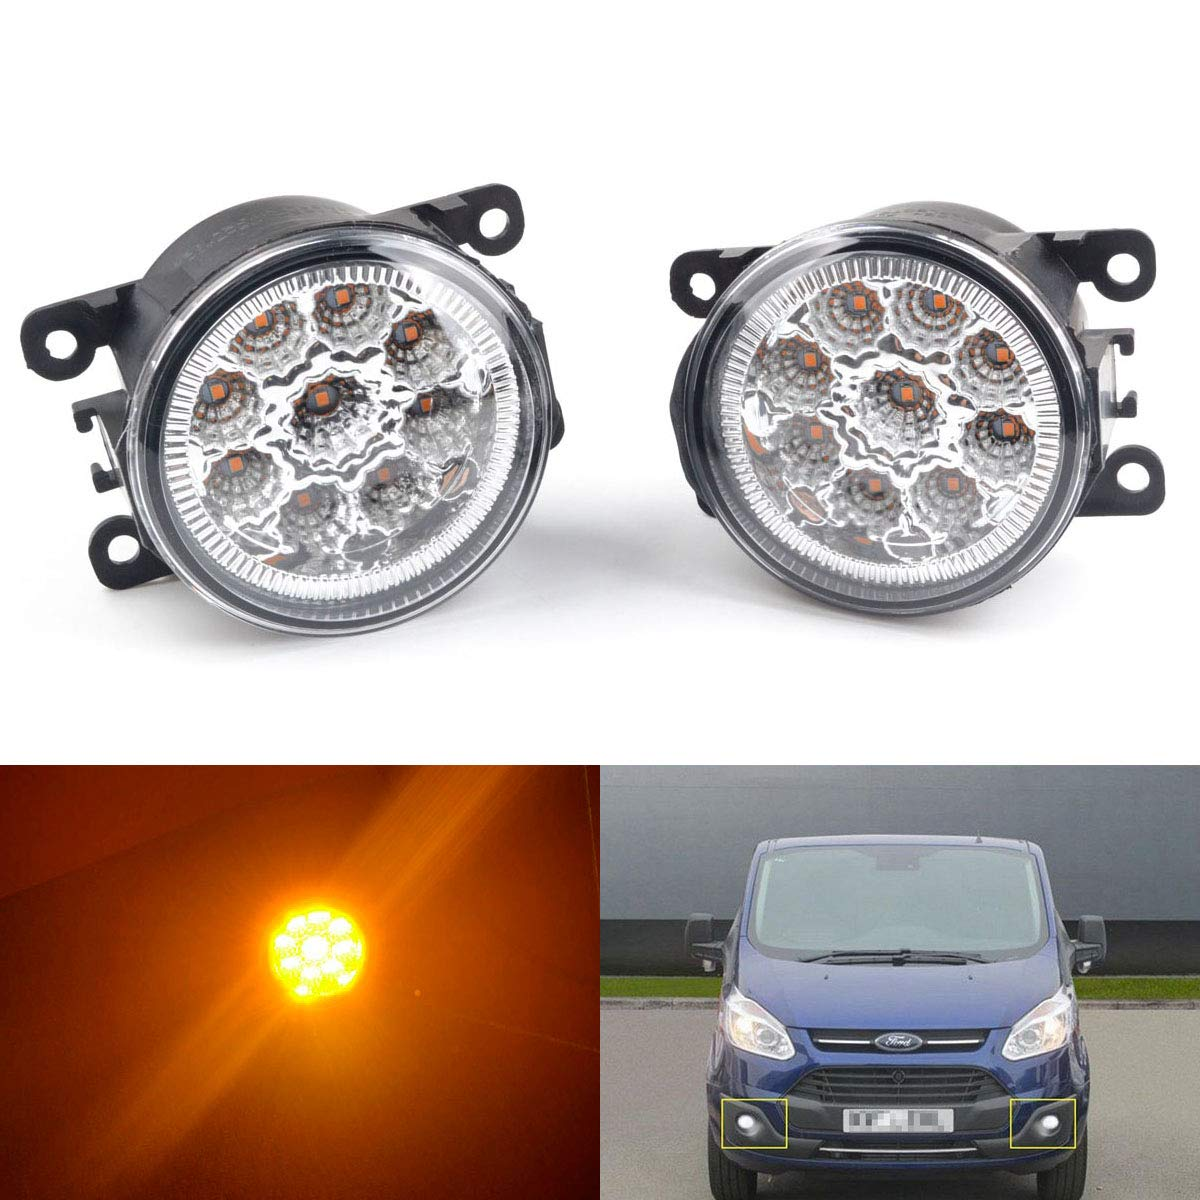 2Pcs 9 LED Round Front Fog Light DRL Daytime Running Light White